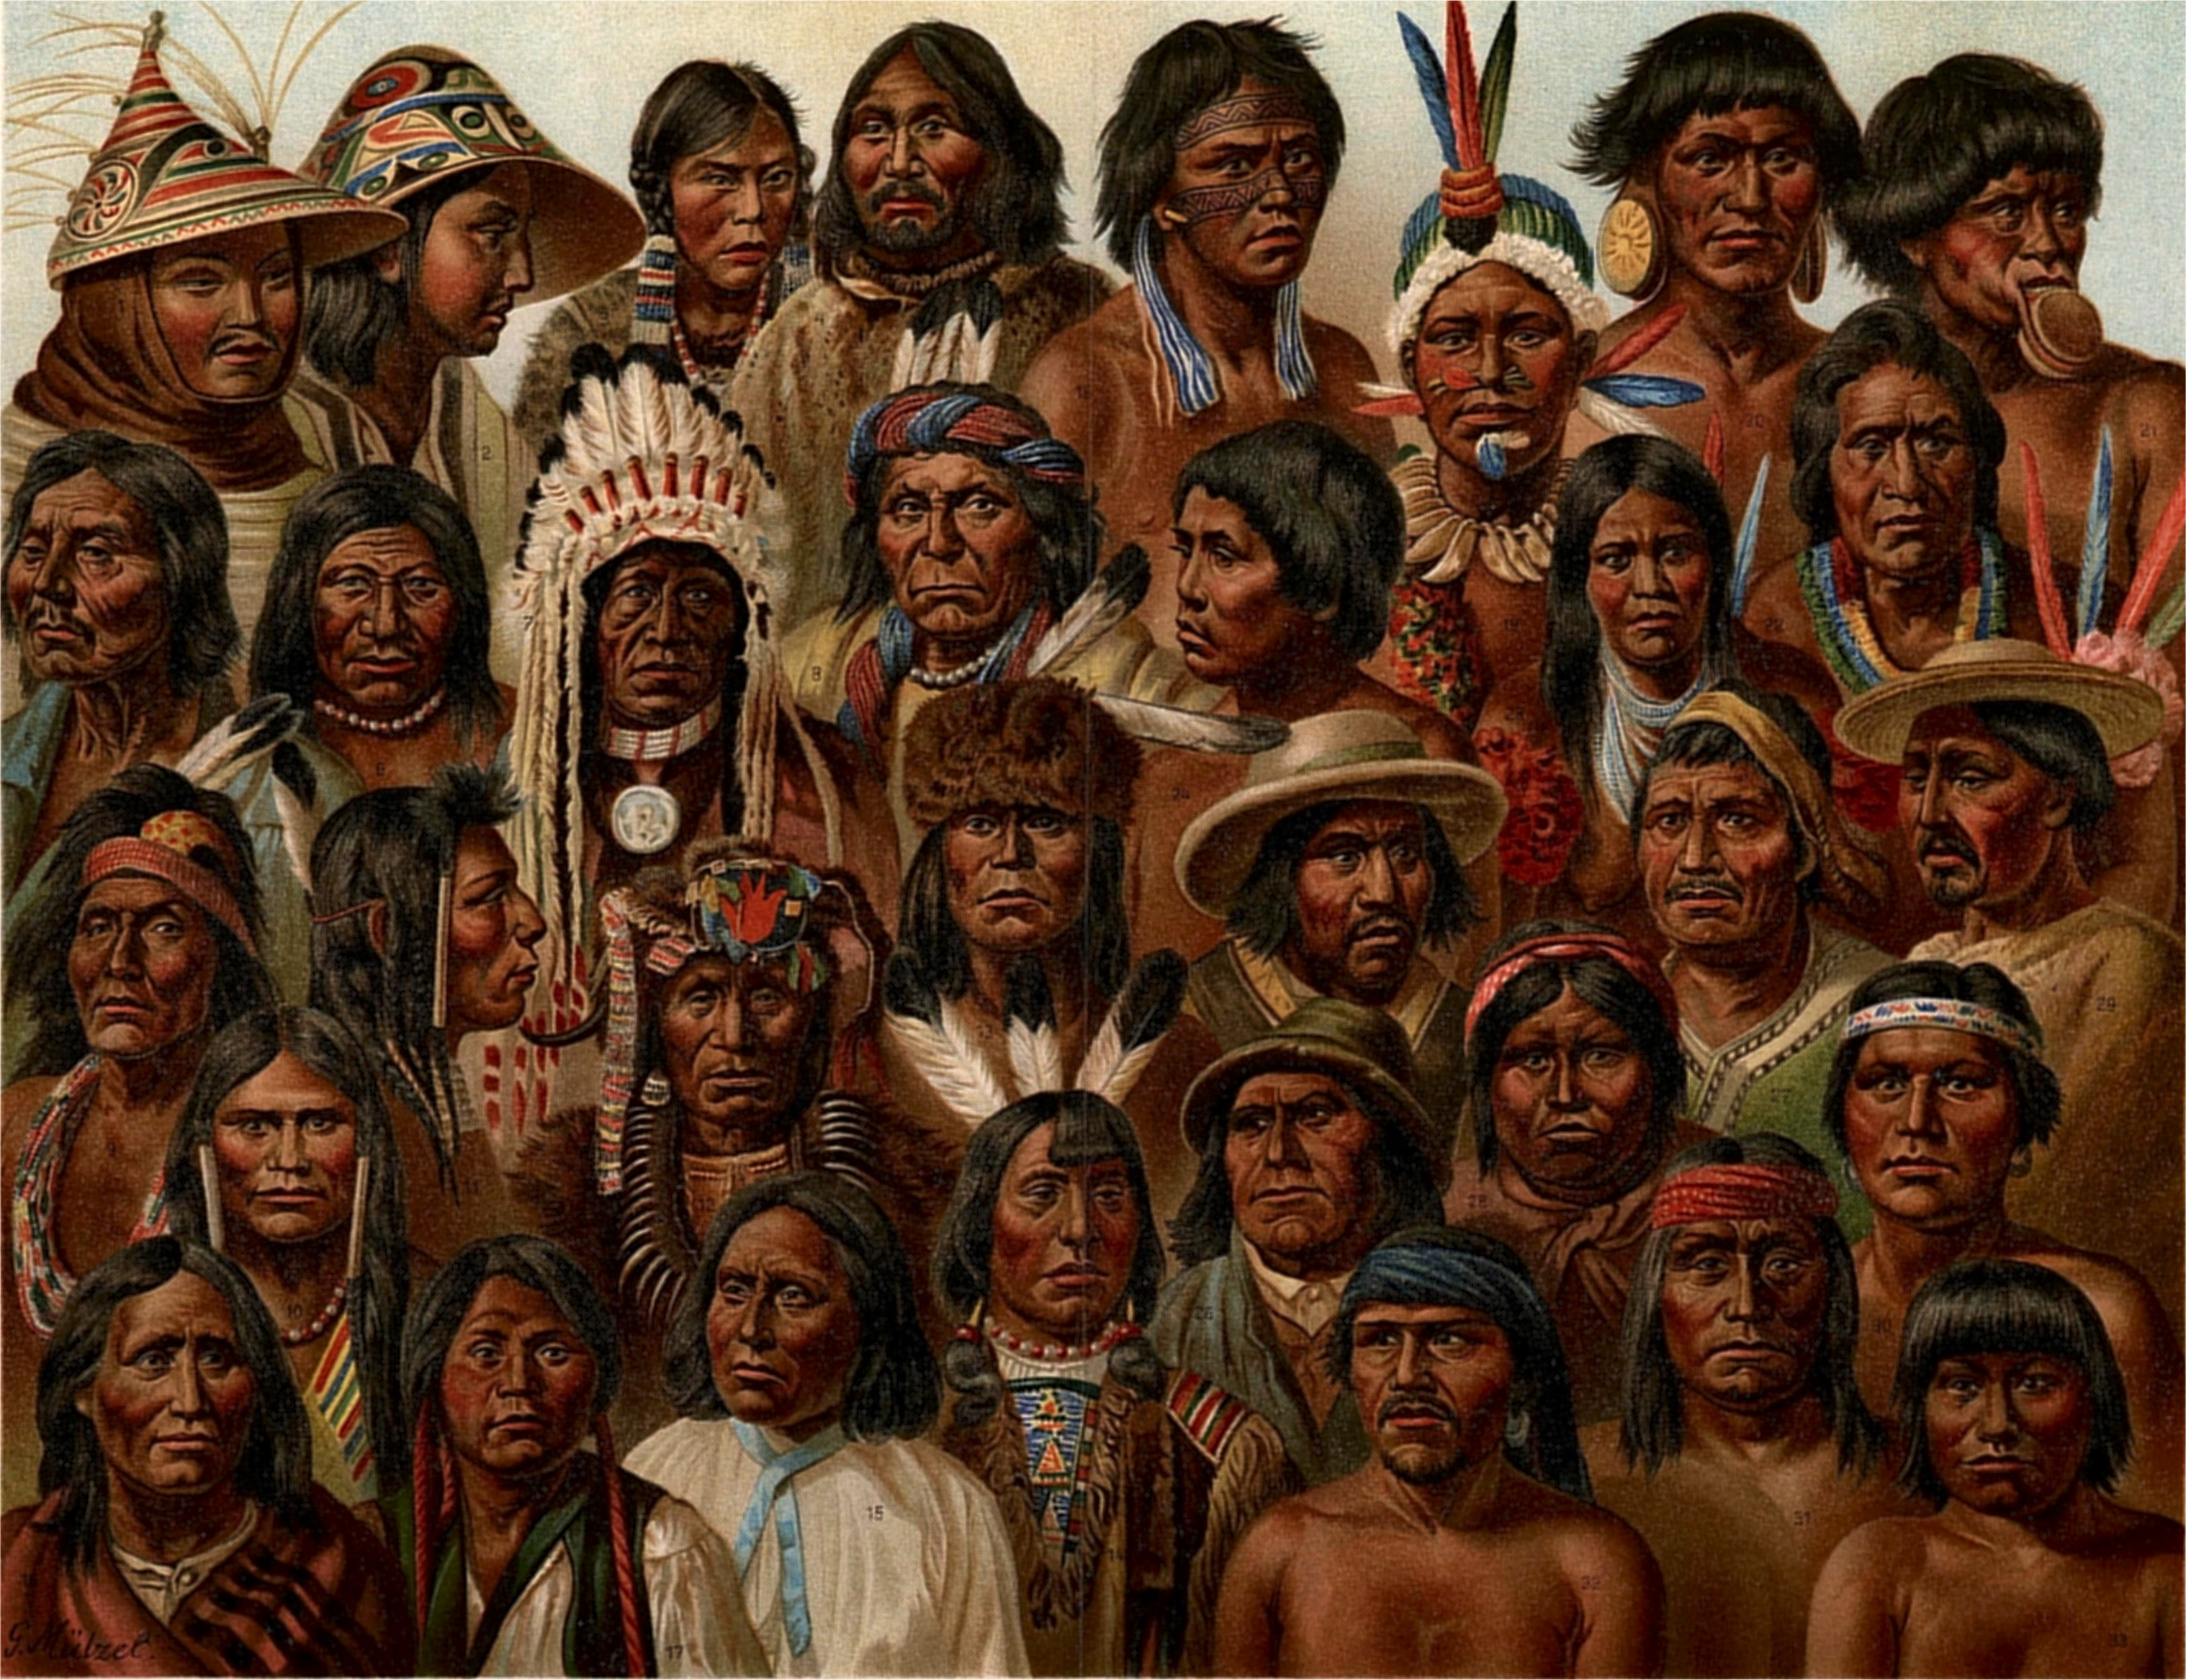 a description of the treatment of native americans in the new united states government Today there are over 500 native american tribes in the united states, each with a  distinct  or start a new life – led to the destruction of native american livelihoods   further, in 1850, the california state government passed the act for the.